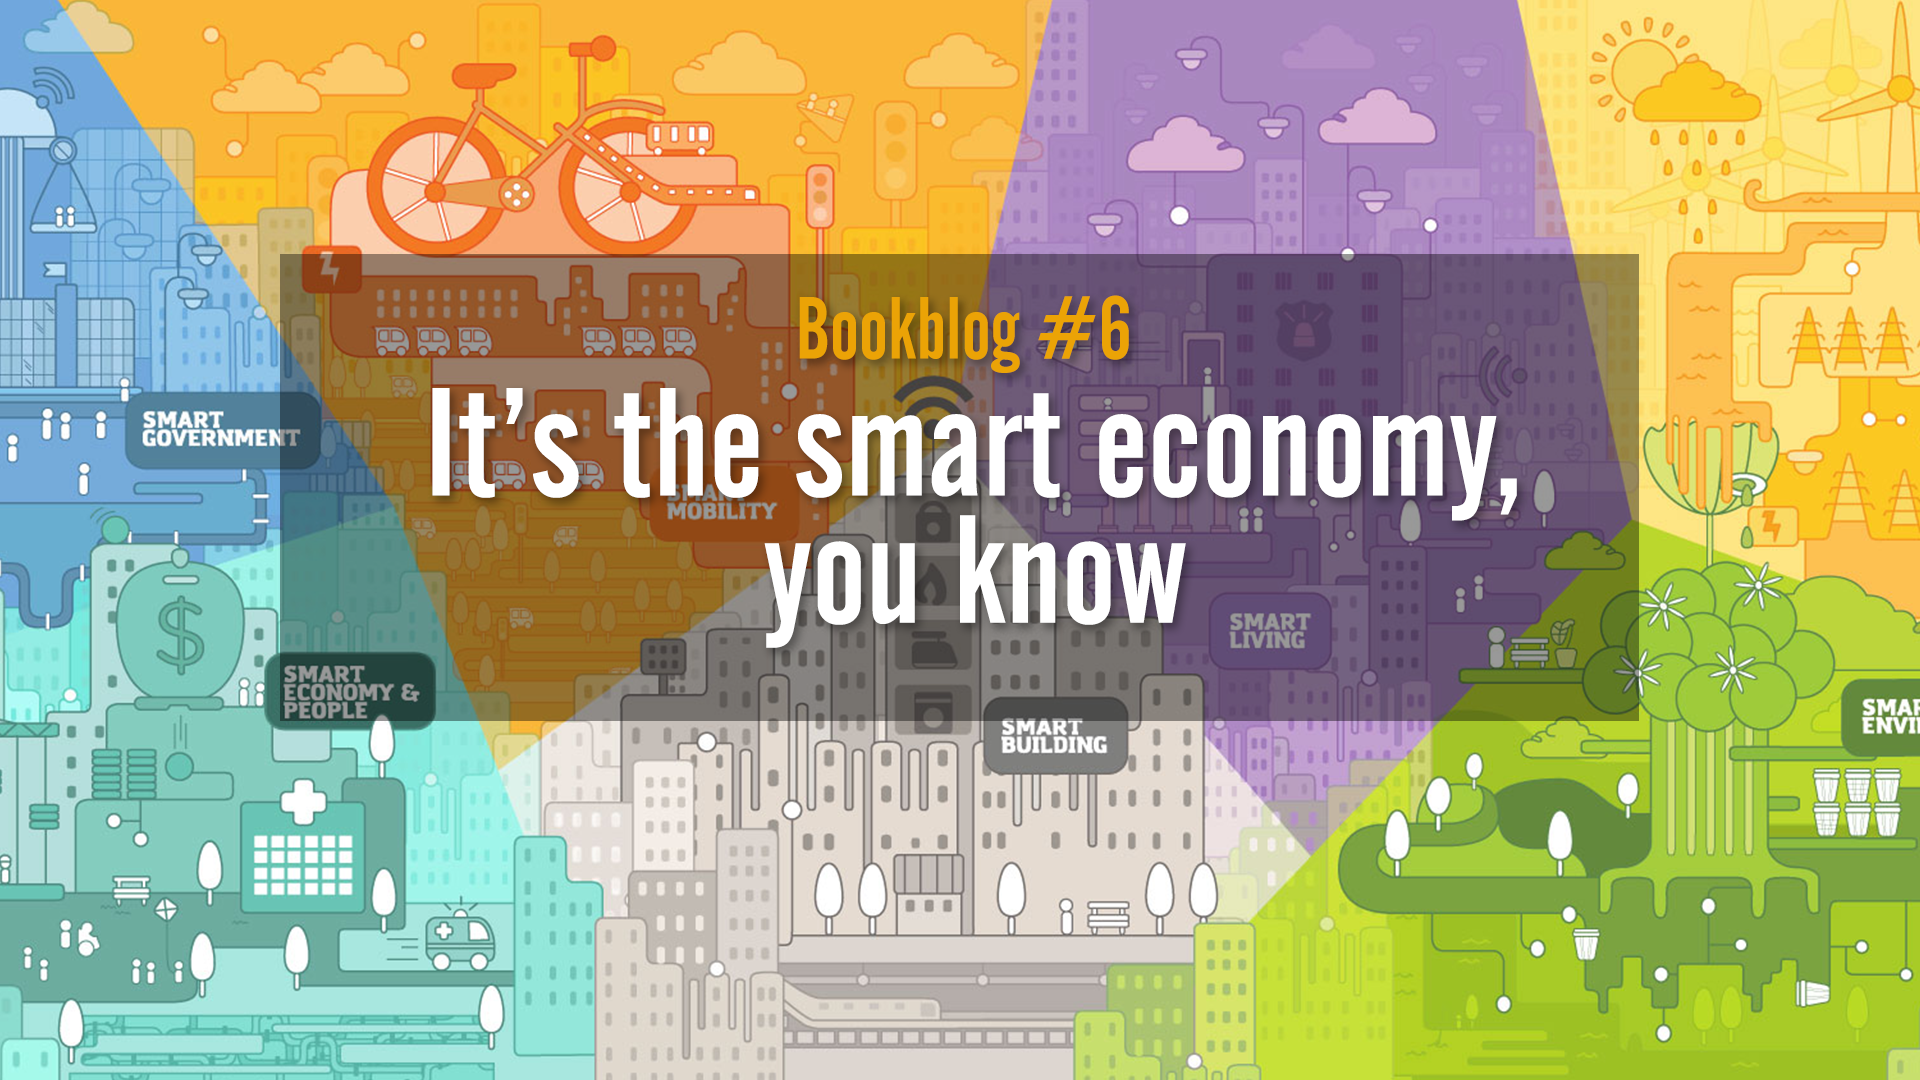 It's the smart economy, you know